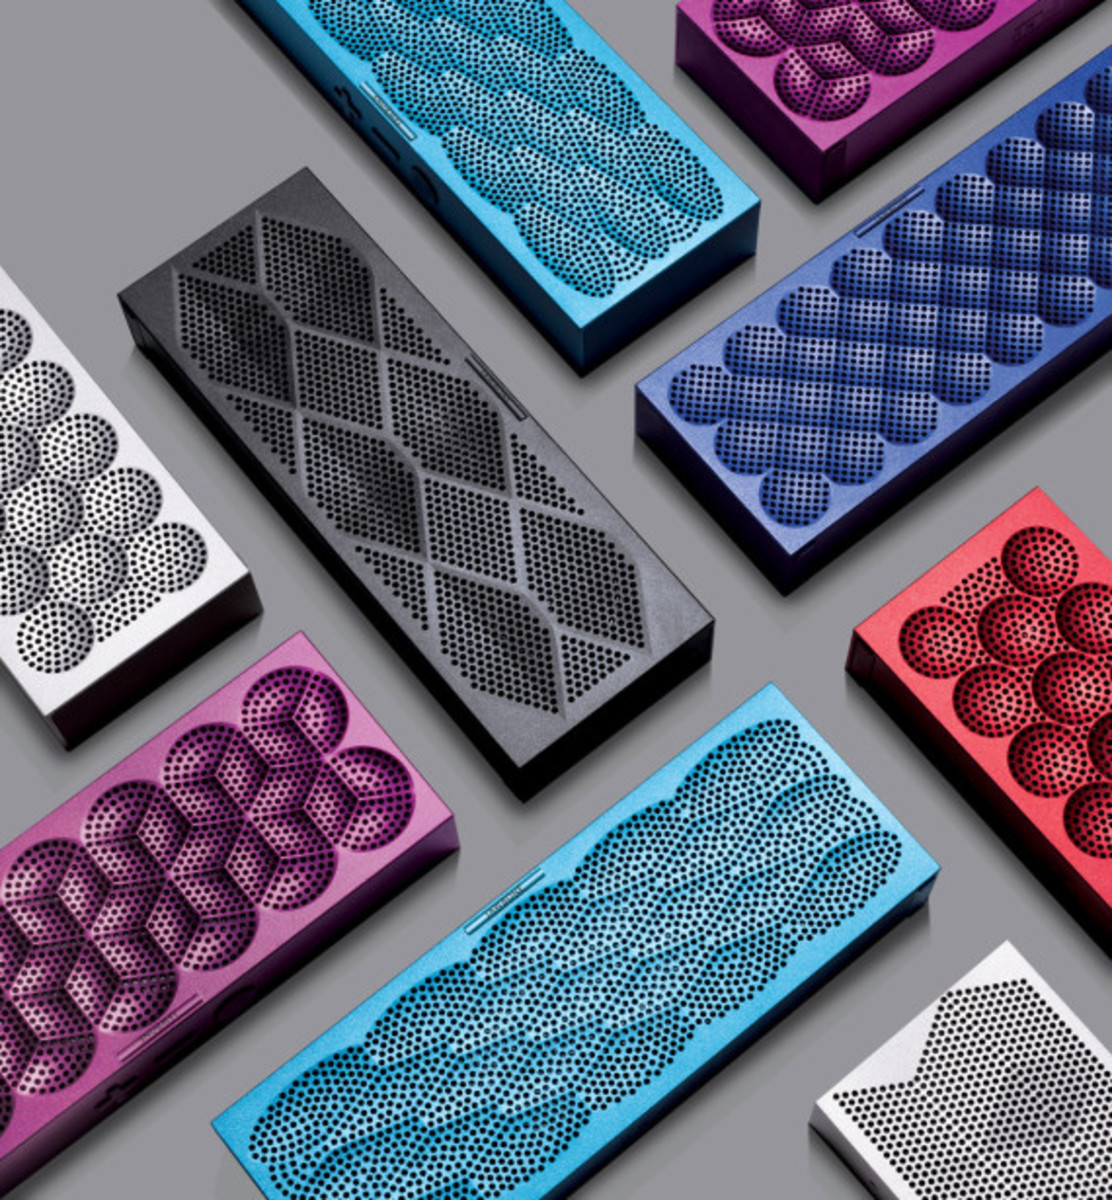 jawbone-mini-jambox-wireless-speaker-texture-02